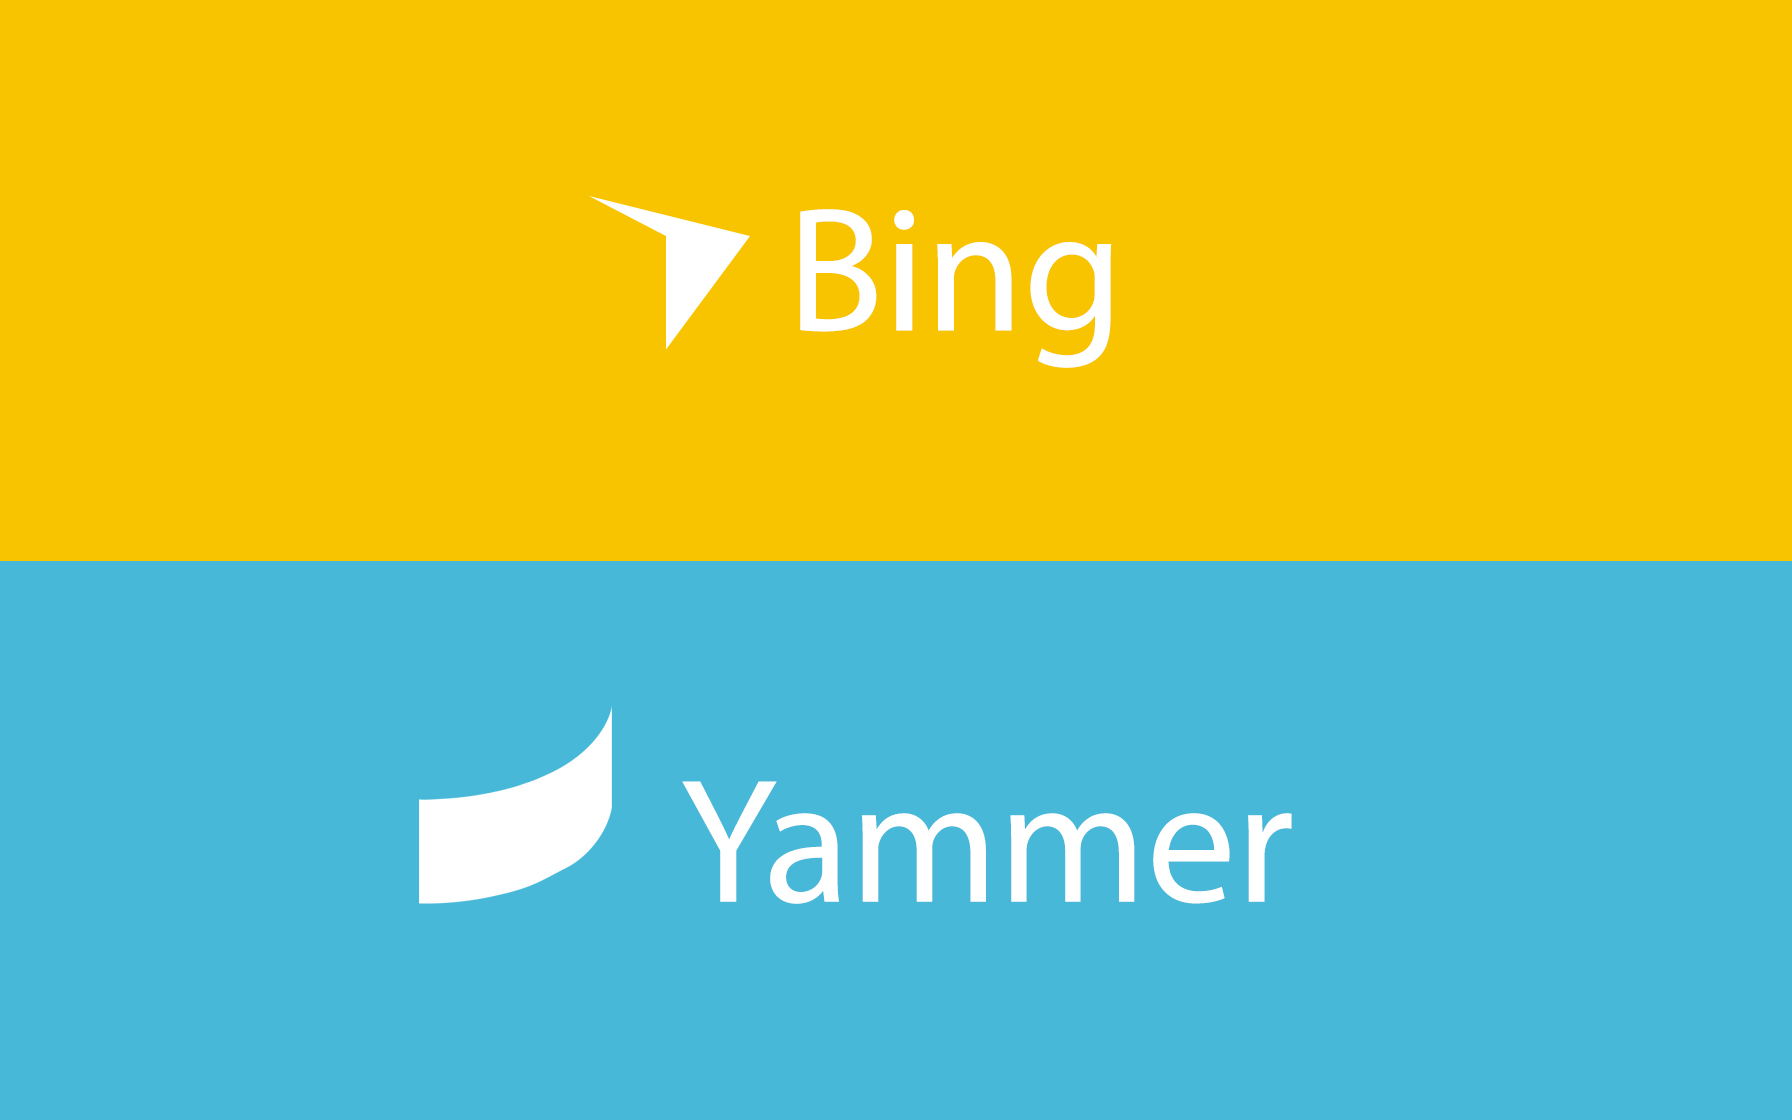 Re-imagining Bing/Yammer Logos - Concept by Brebenel-Silviu